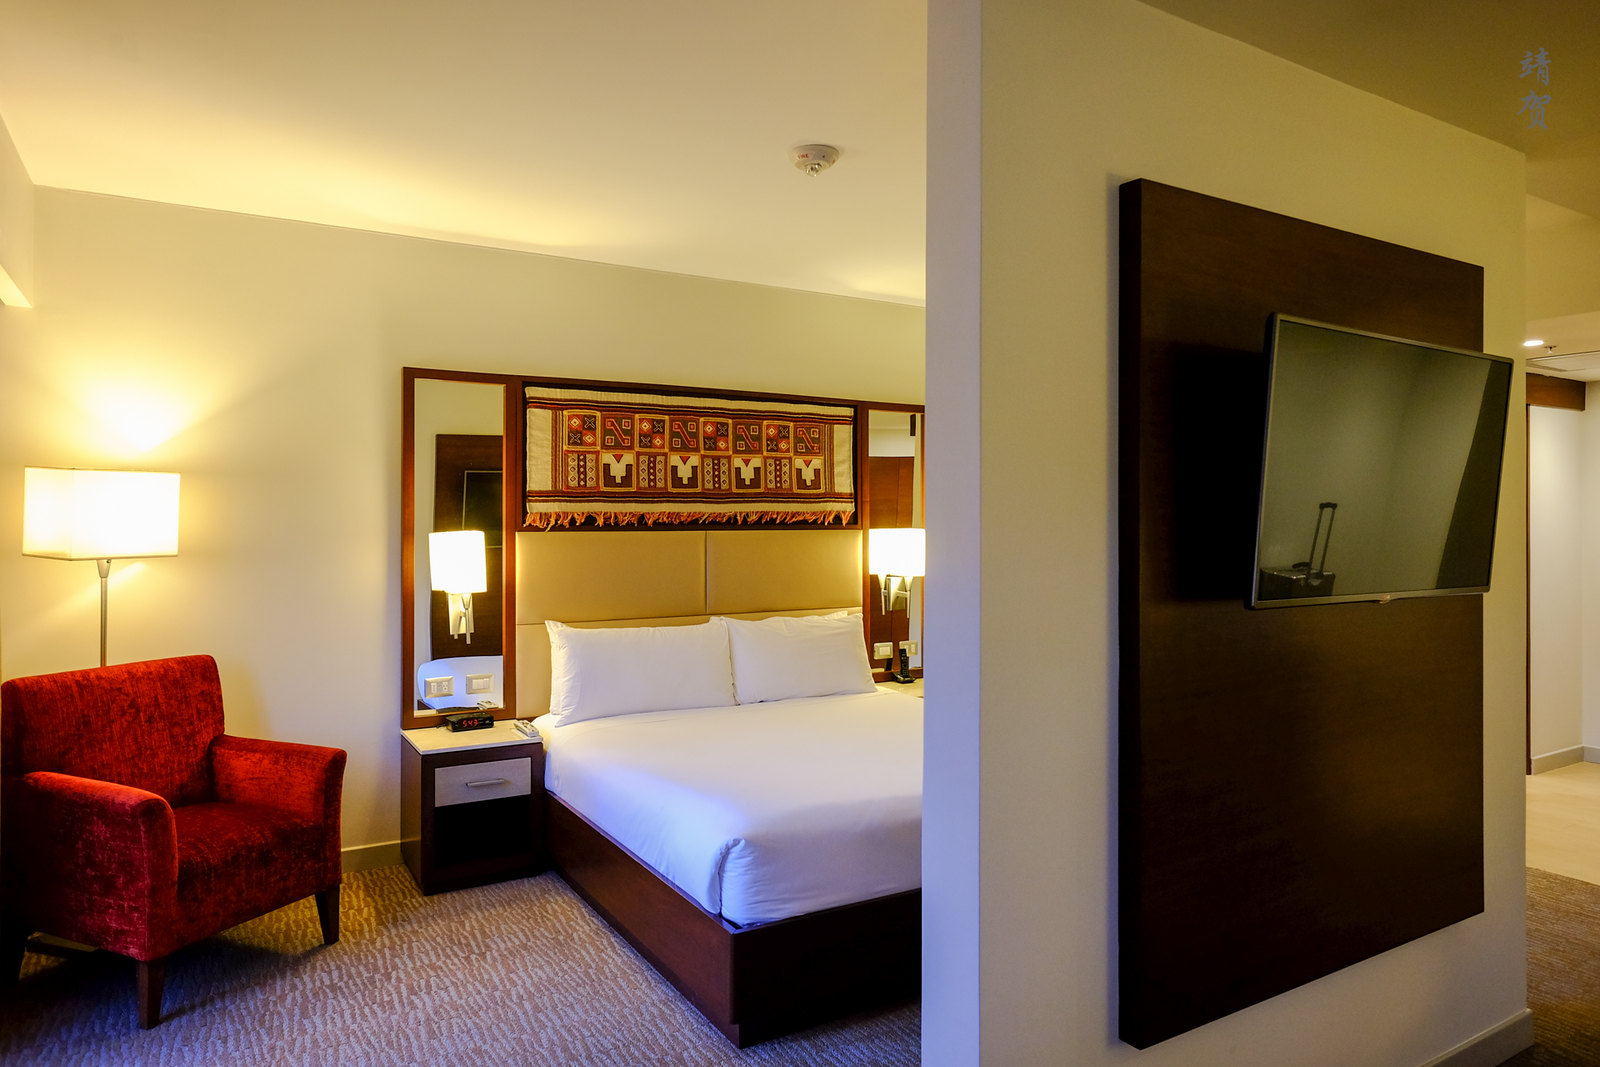 Suite overview